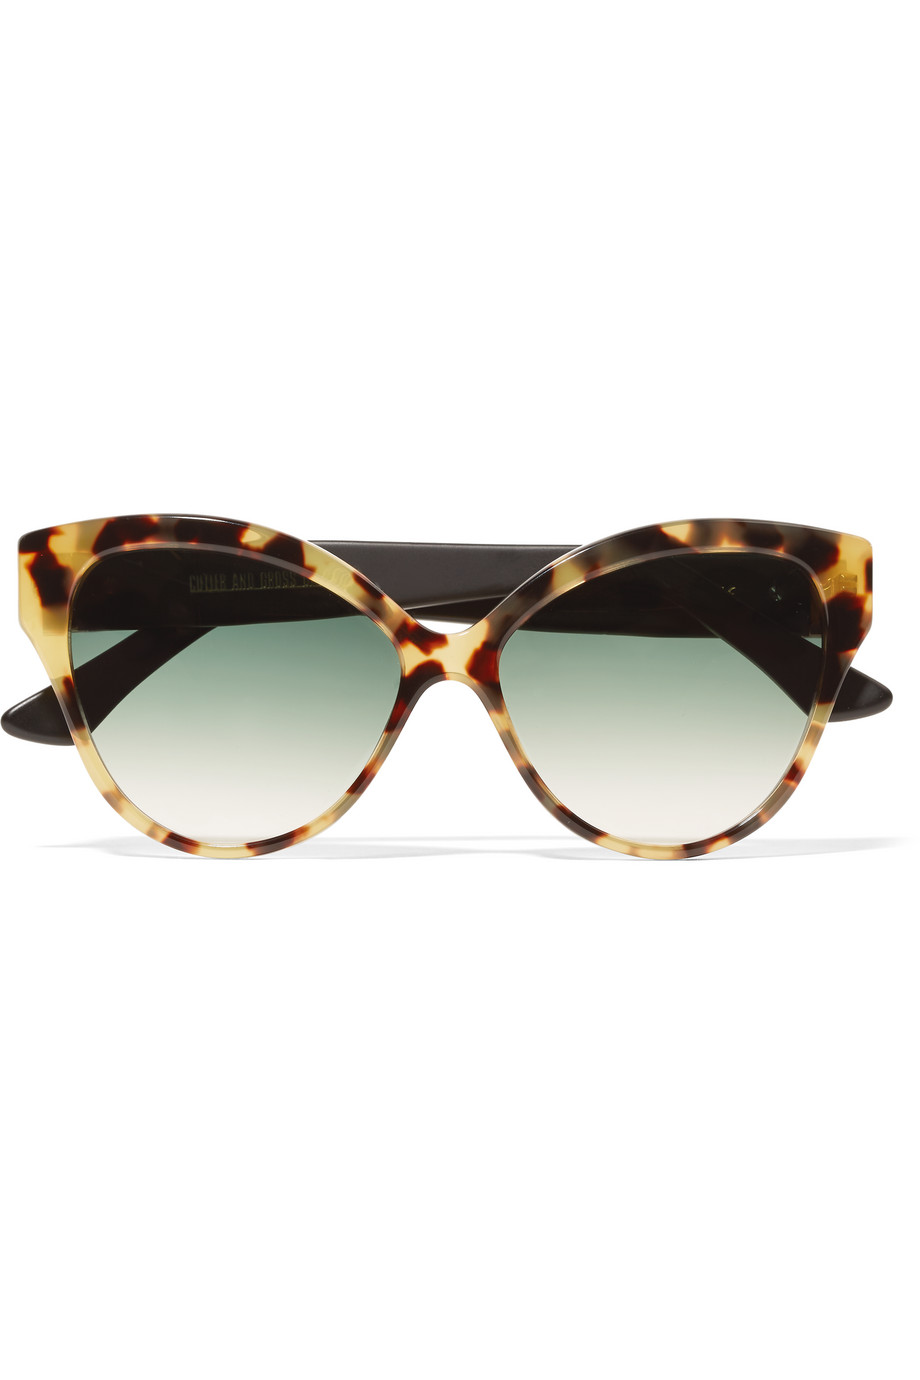 Tequila Sunrise Cat-Eye Acetate Sunglasses, Cutler and Gross